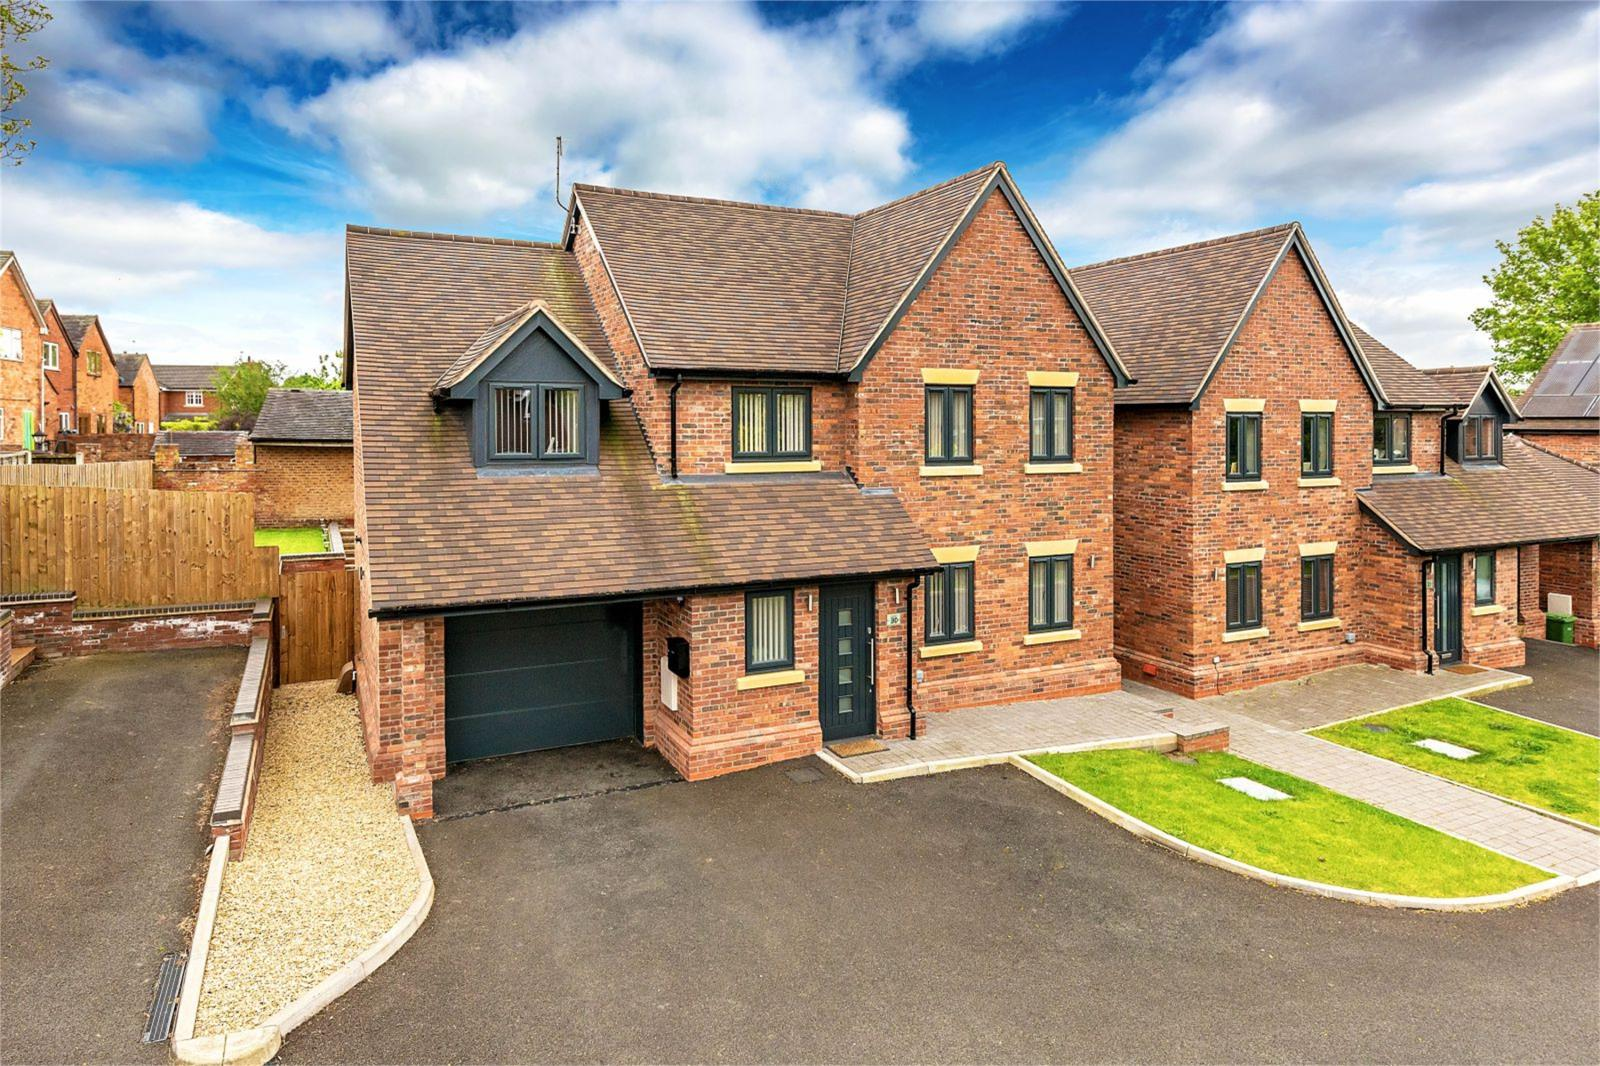 4 Bedrooms Detached House for sale in The Elms, Bentleys Road, Market Drayton, Shropshire, TF9